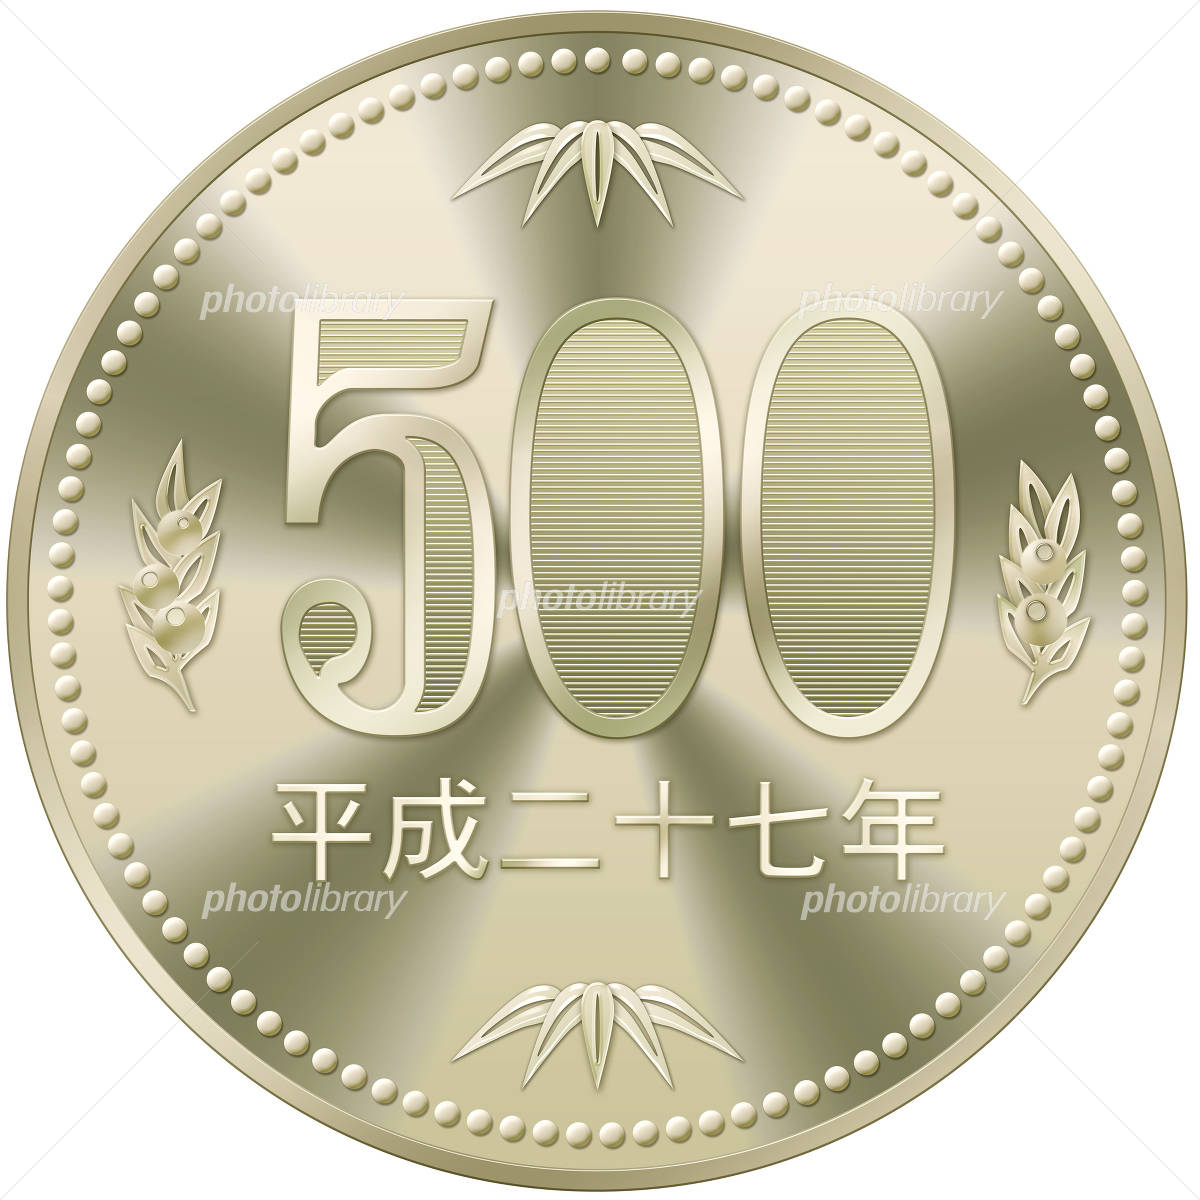 500 yen coin illustrations 2015 イラスト素材